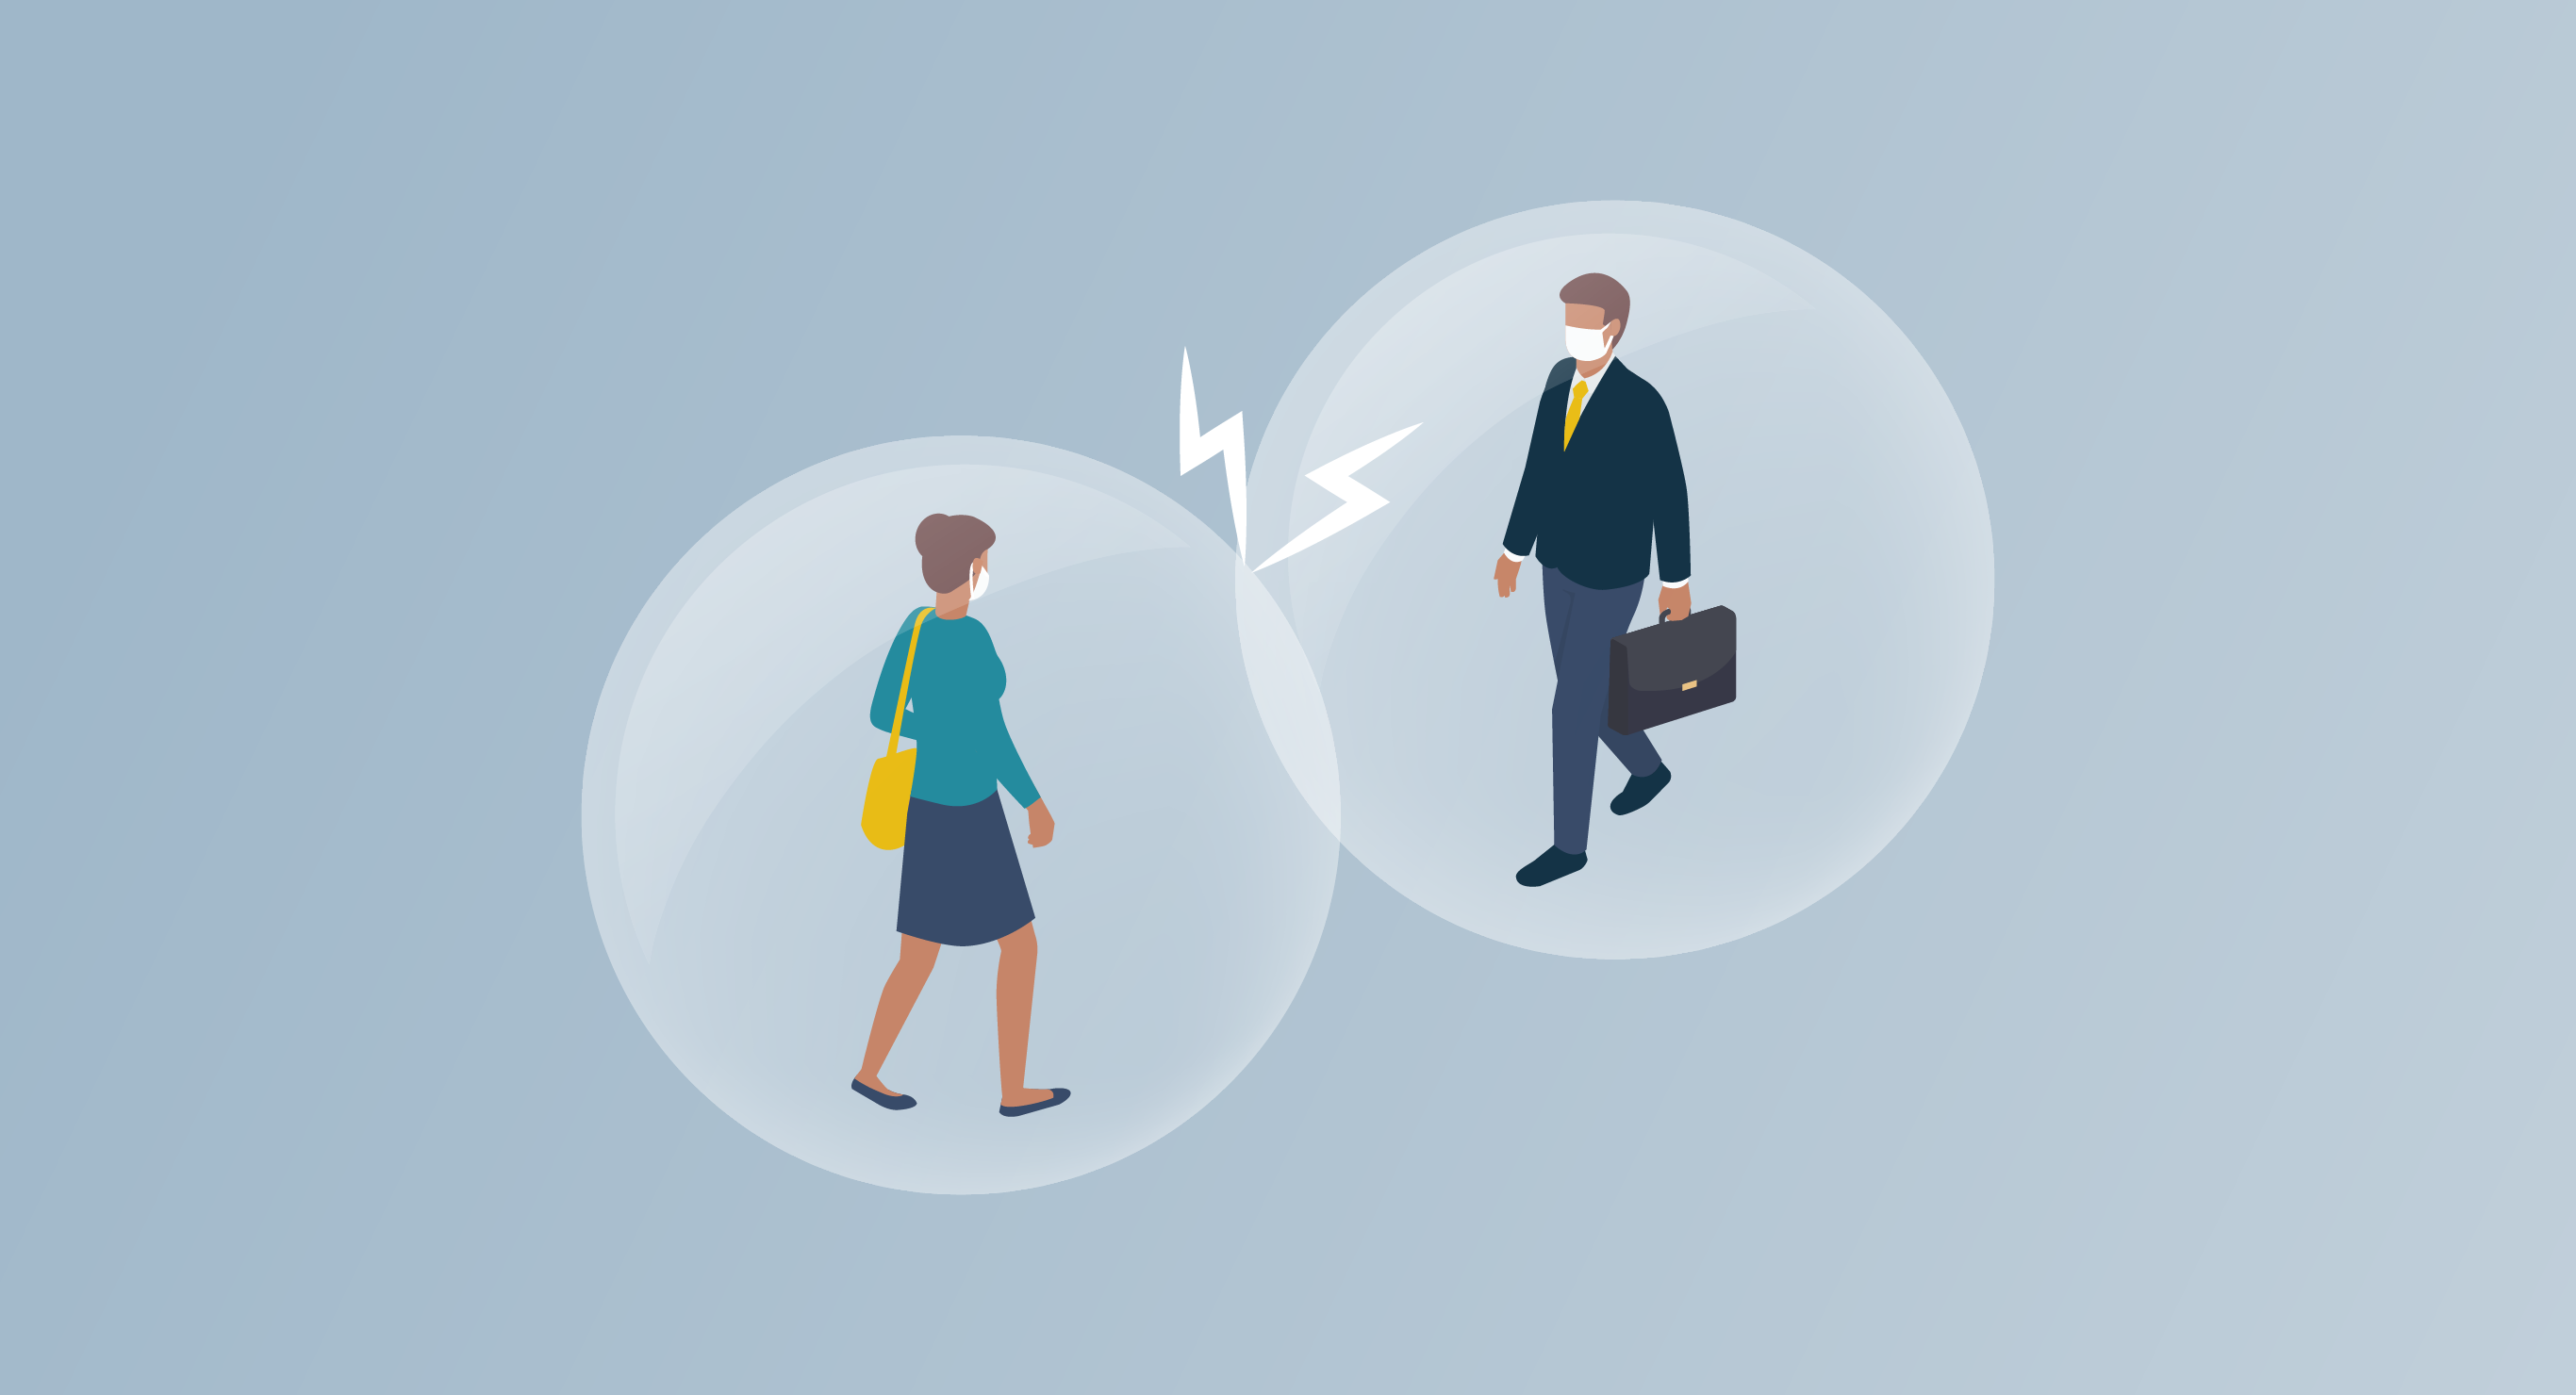 illustration showing two people in bubbles to signify social distance